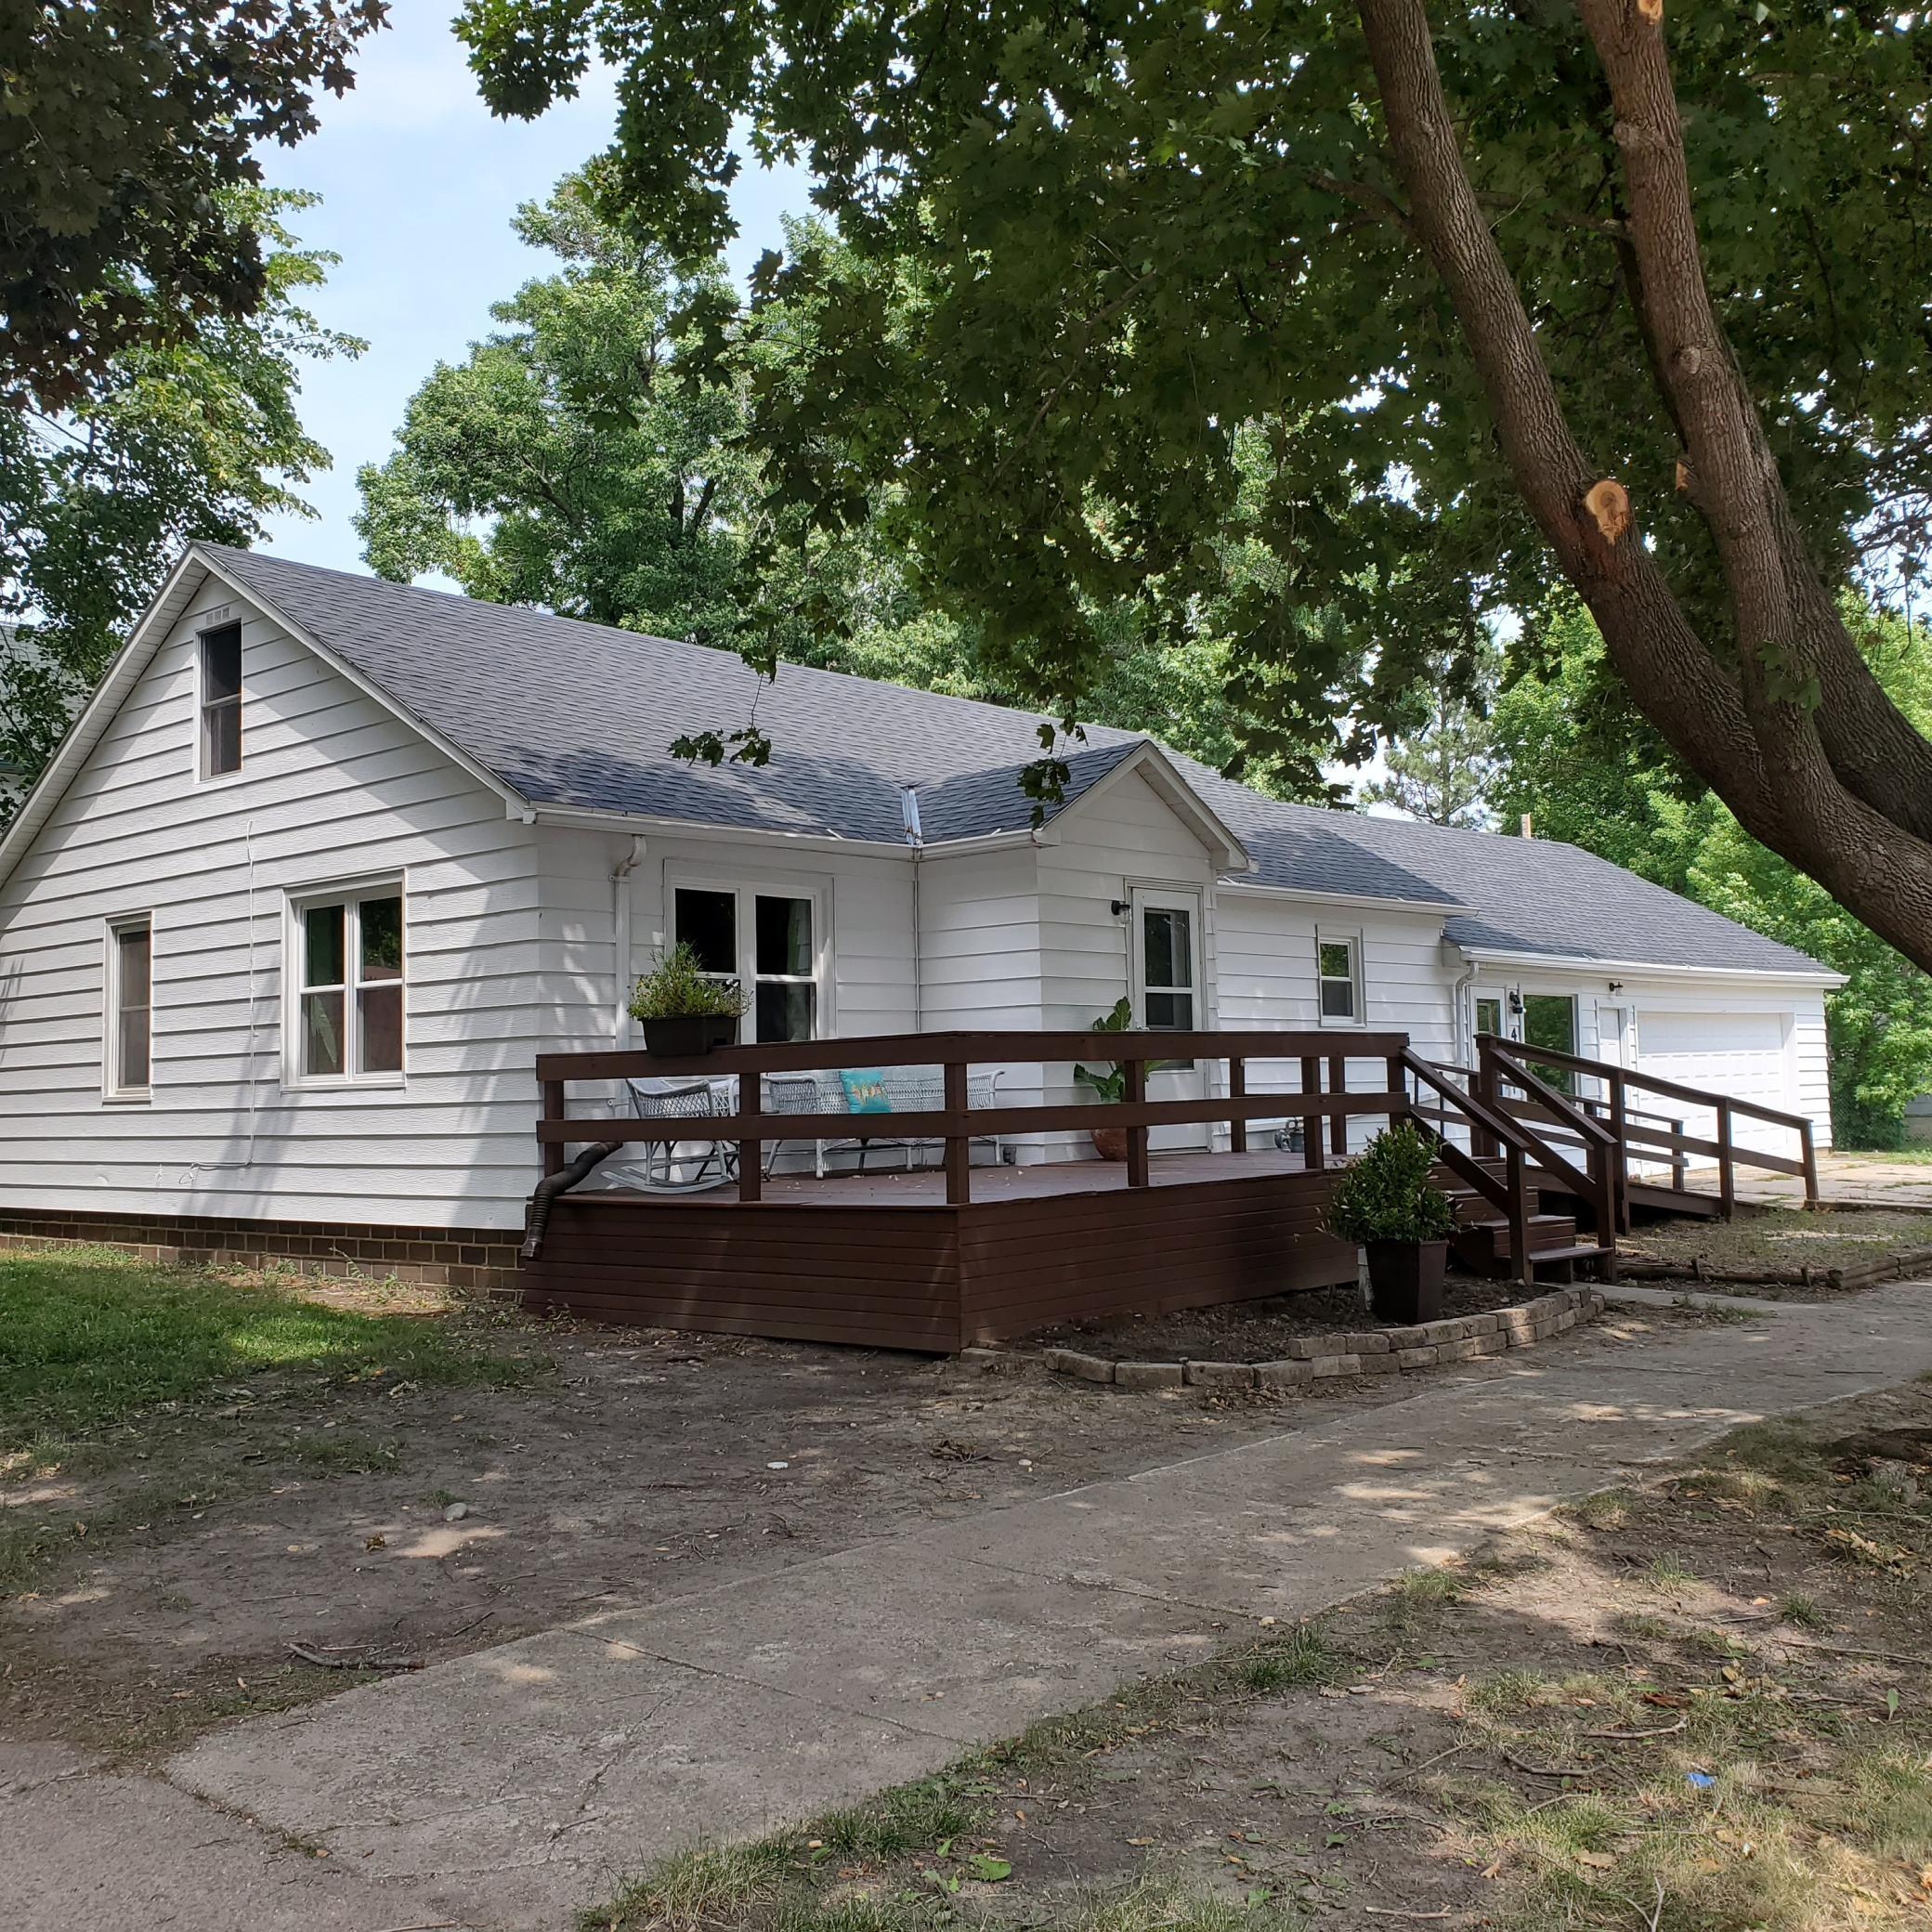 401 4th Avenue, Lakefield, MN 56150, 2 Bedrooms Bedrooms, ,1 BathroomBathrooms,Residential,For Sale,4th,NST6080447